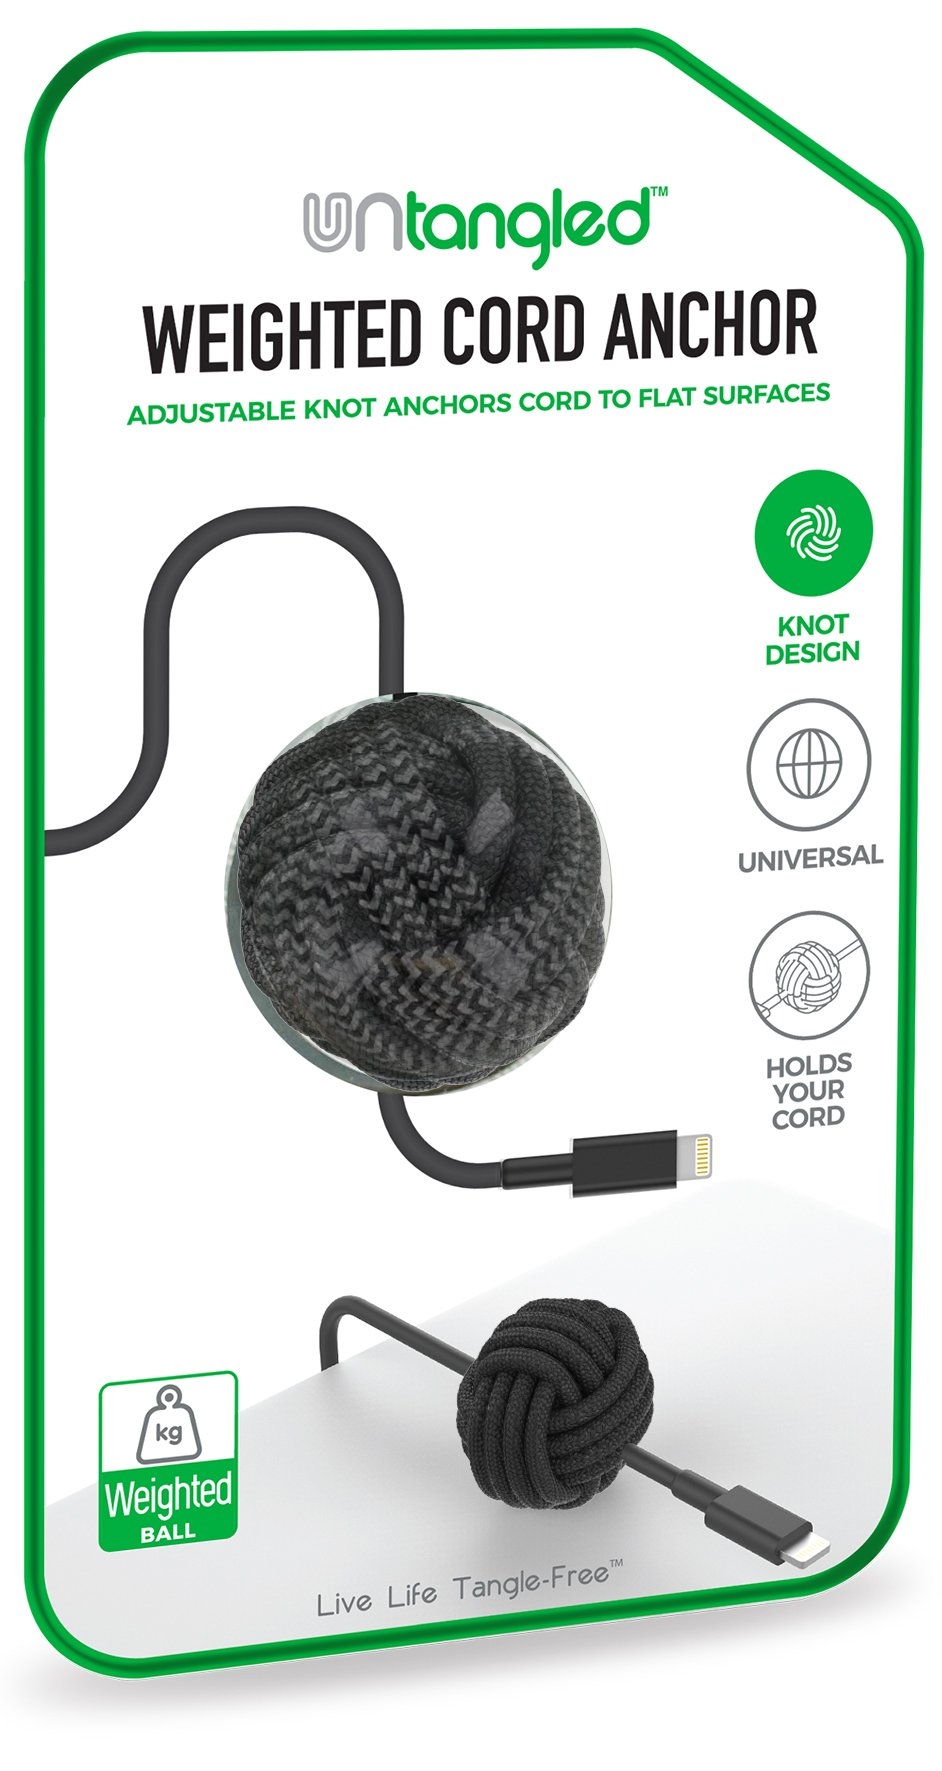 Untangled Weighted Desktop Cord Anchor Holder Cable Organizer Wire Holder for Desk Wire Management Cable Cord Ball Adjustable Knot Anchor (Black)